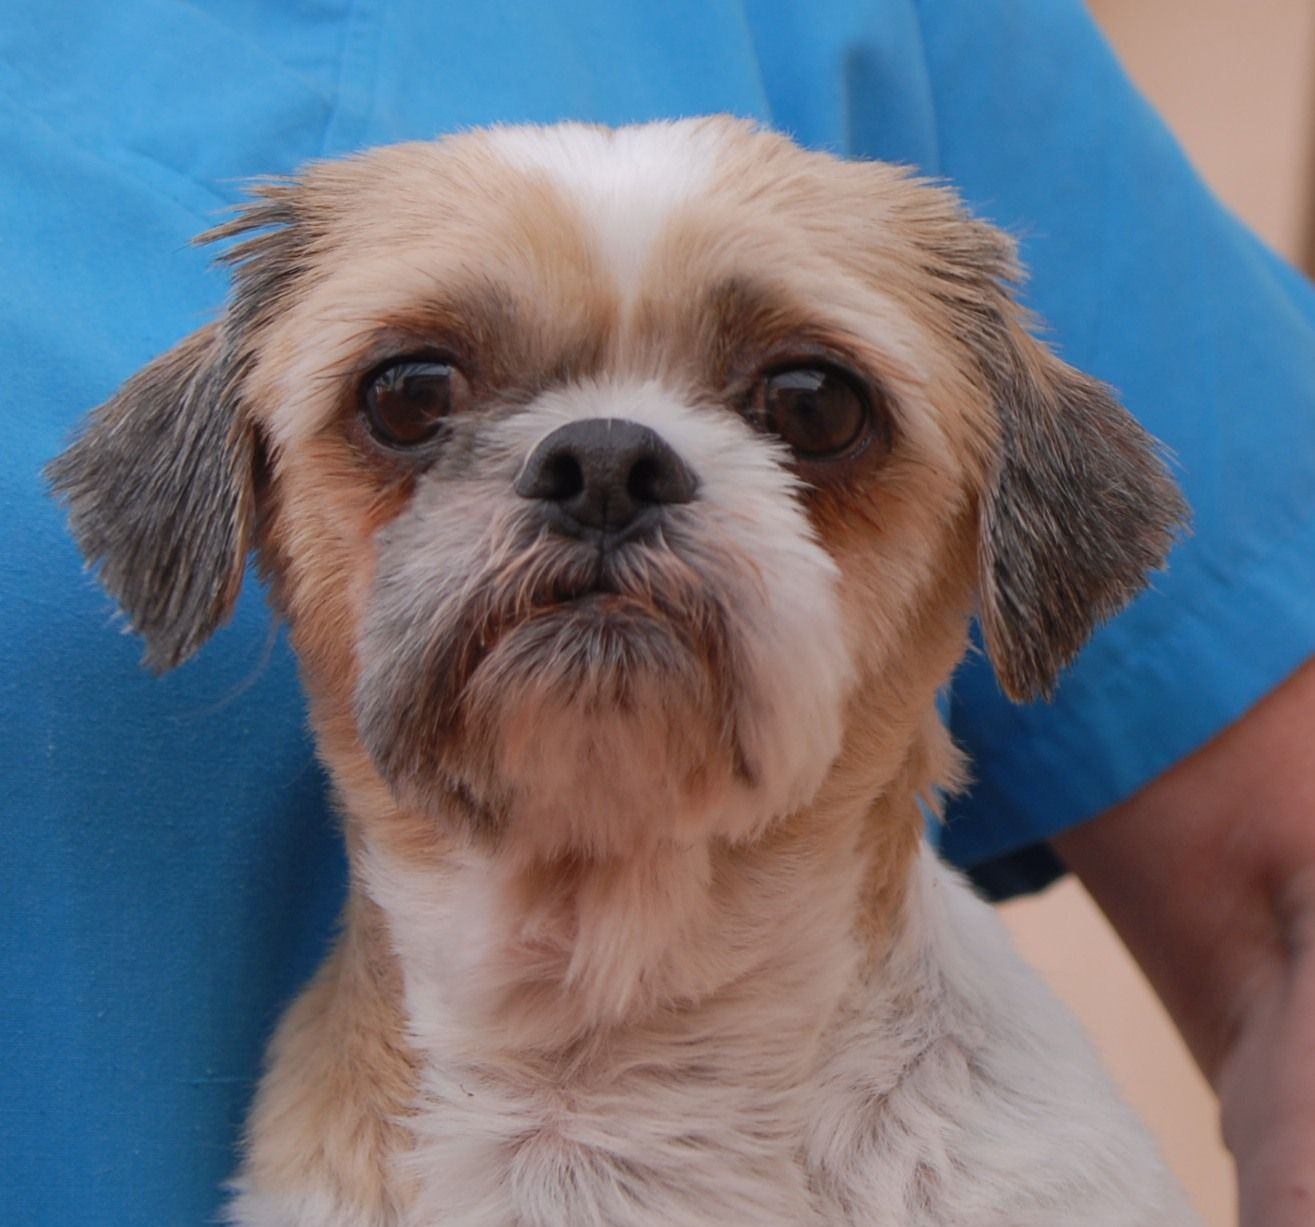 Remo is a thoughtful, tender-hearted Shih-Tzu debuting for adoption on Christmas Eve at Nevada SPCA (www.nevadaspca.org). He is about 5 years of age and neutered, and compatible with other friendly dogs. Remo was at another shelter with ear infections and needed our help. We suspect he had past infections left untreated, so Remo will need an owner who can carefully monitor the cleanliness and condition of his ears for the rest of his life.